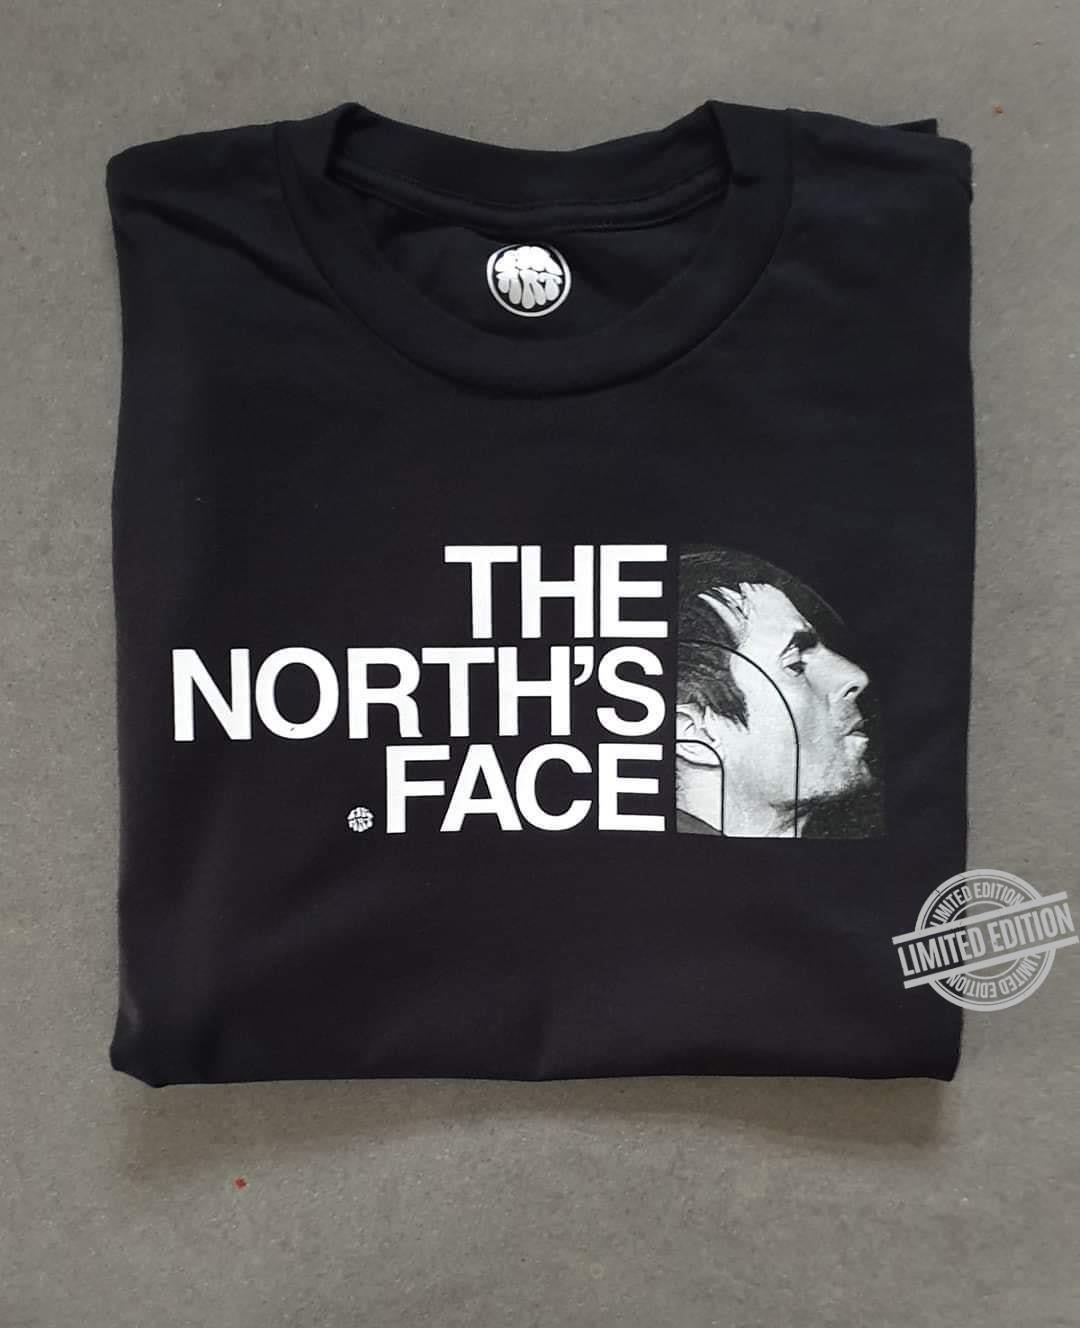 The North's Face Shirt